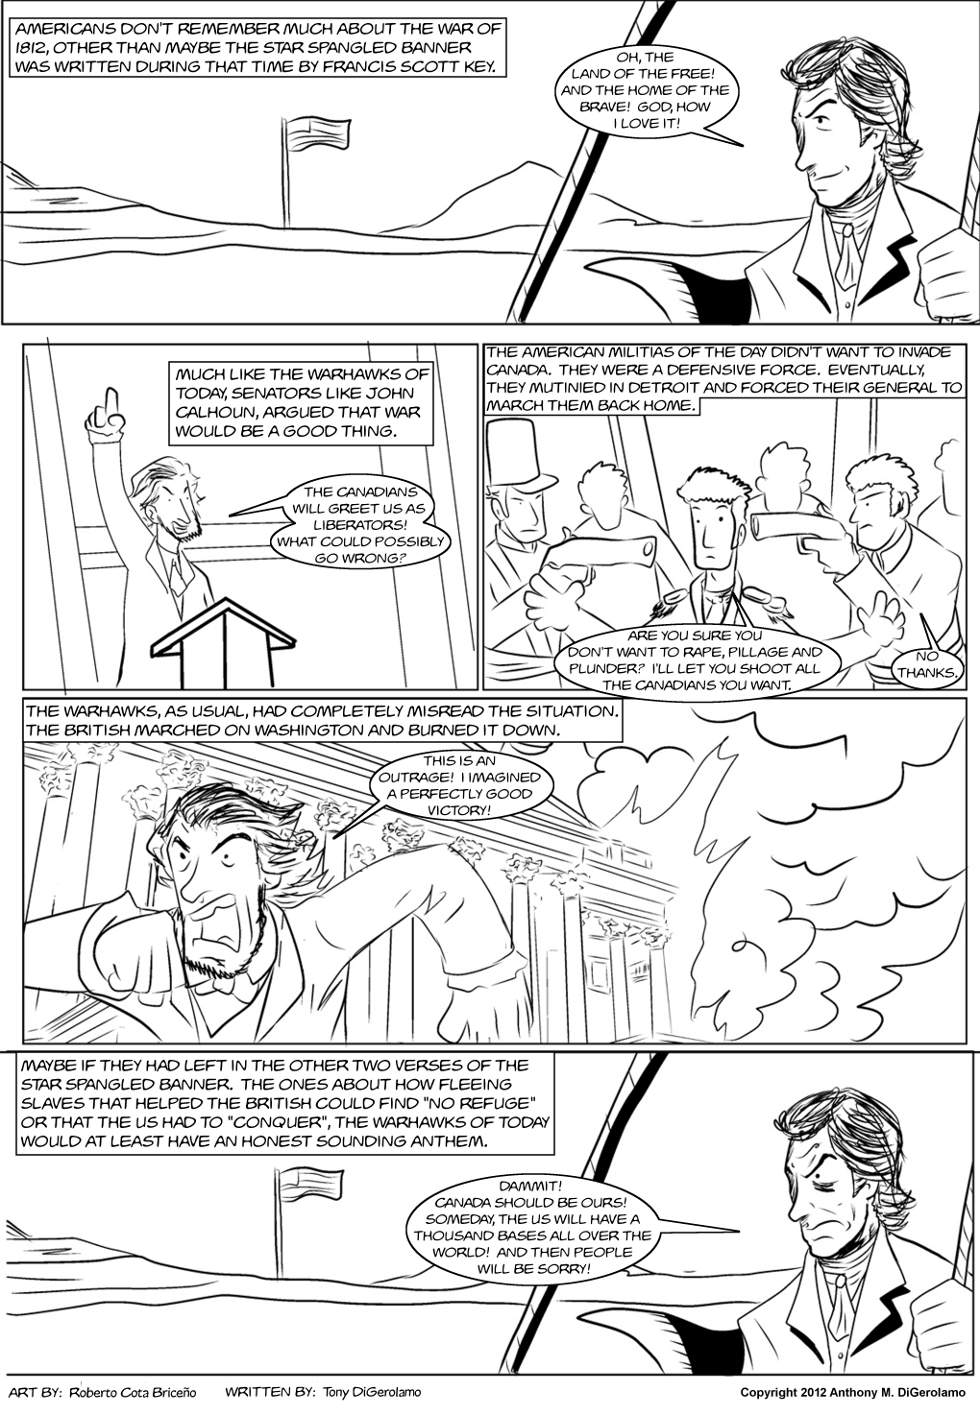 The Antiwar Comic:  The 1812 Overkill